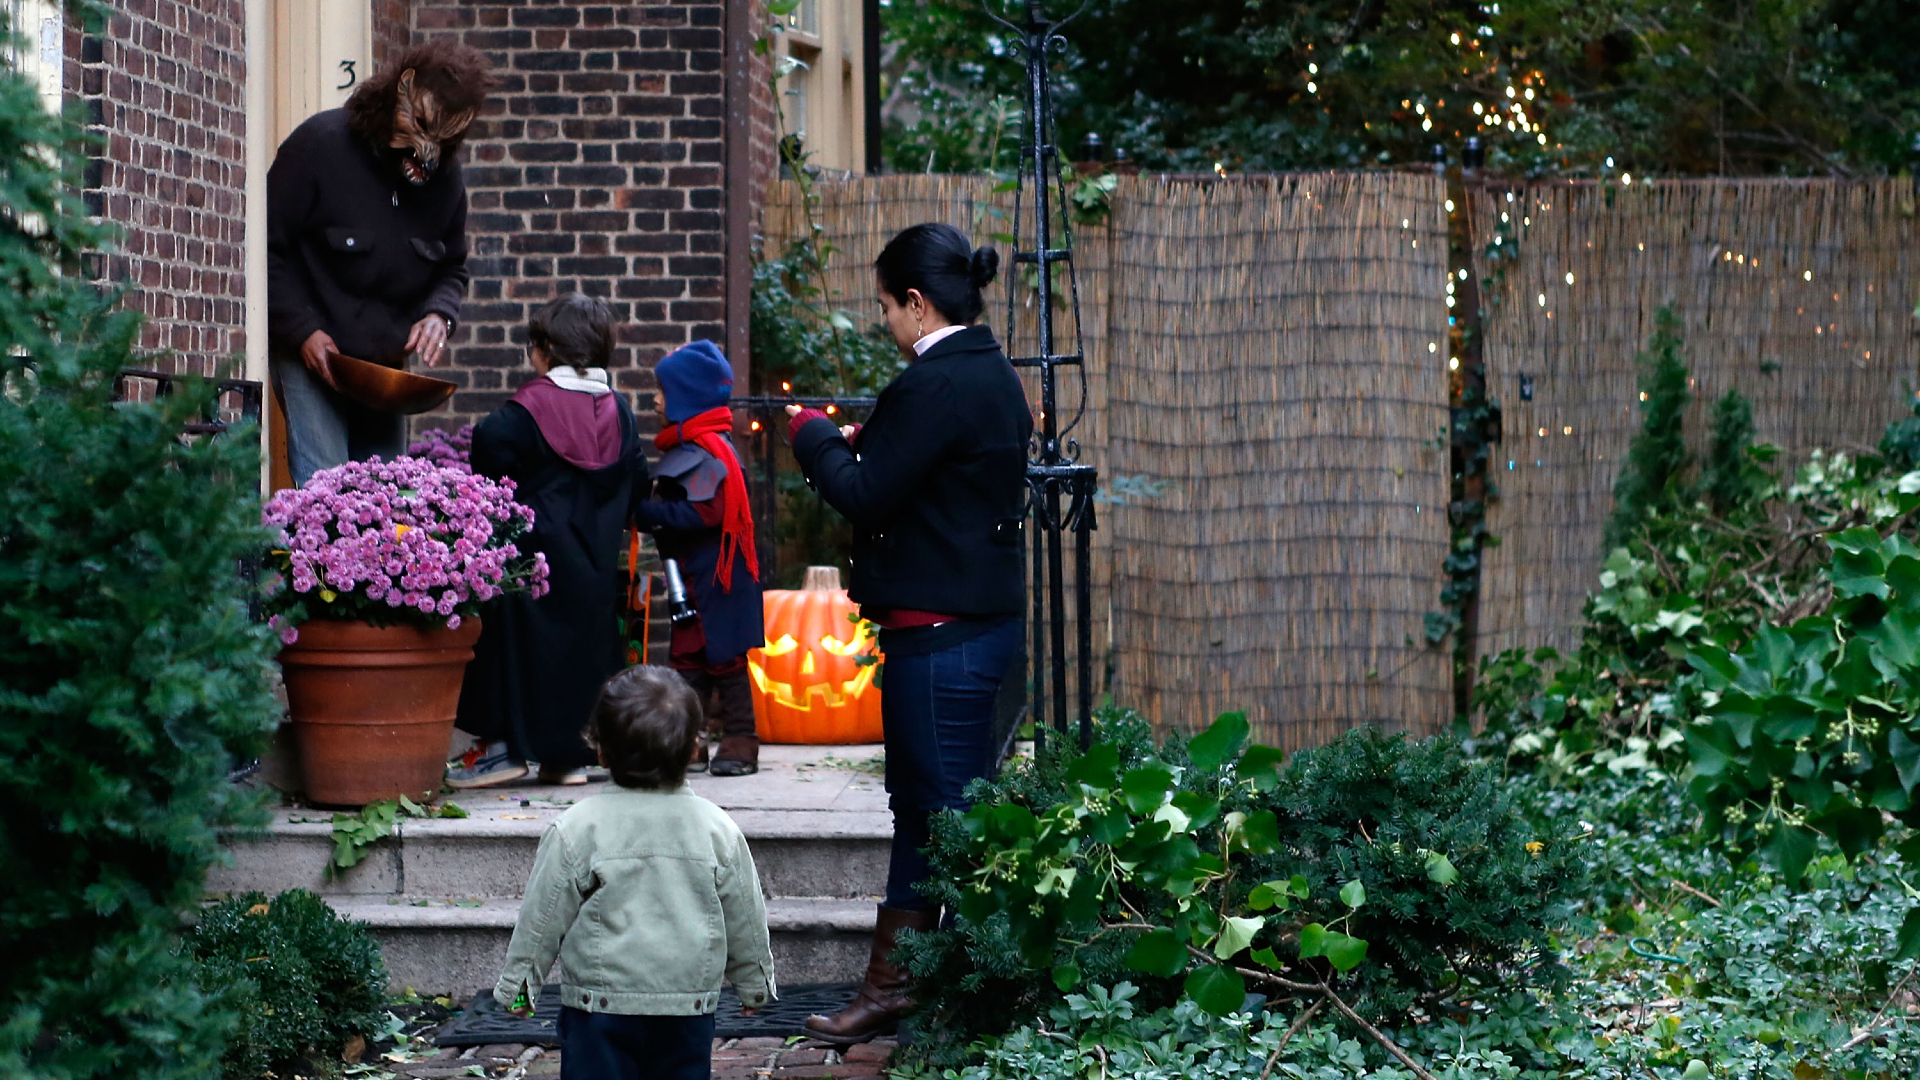 An adult dressed as a werewolf gives candy to trick-or-treating children in Brooklyn, New York City, on Oct. 31, 2012. (Jemal Countess / Getty Images)